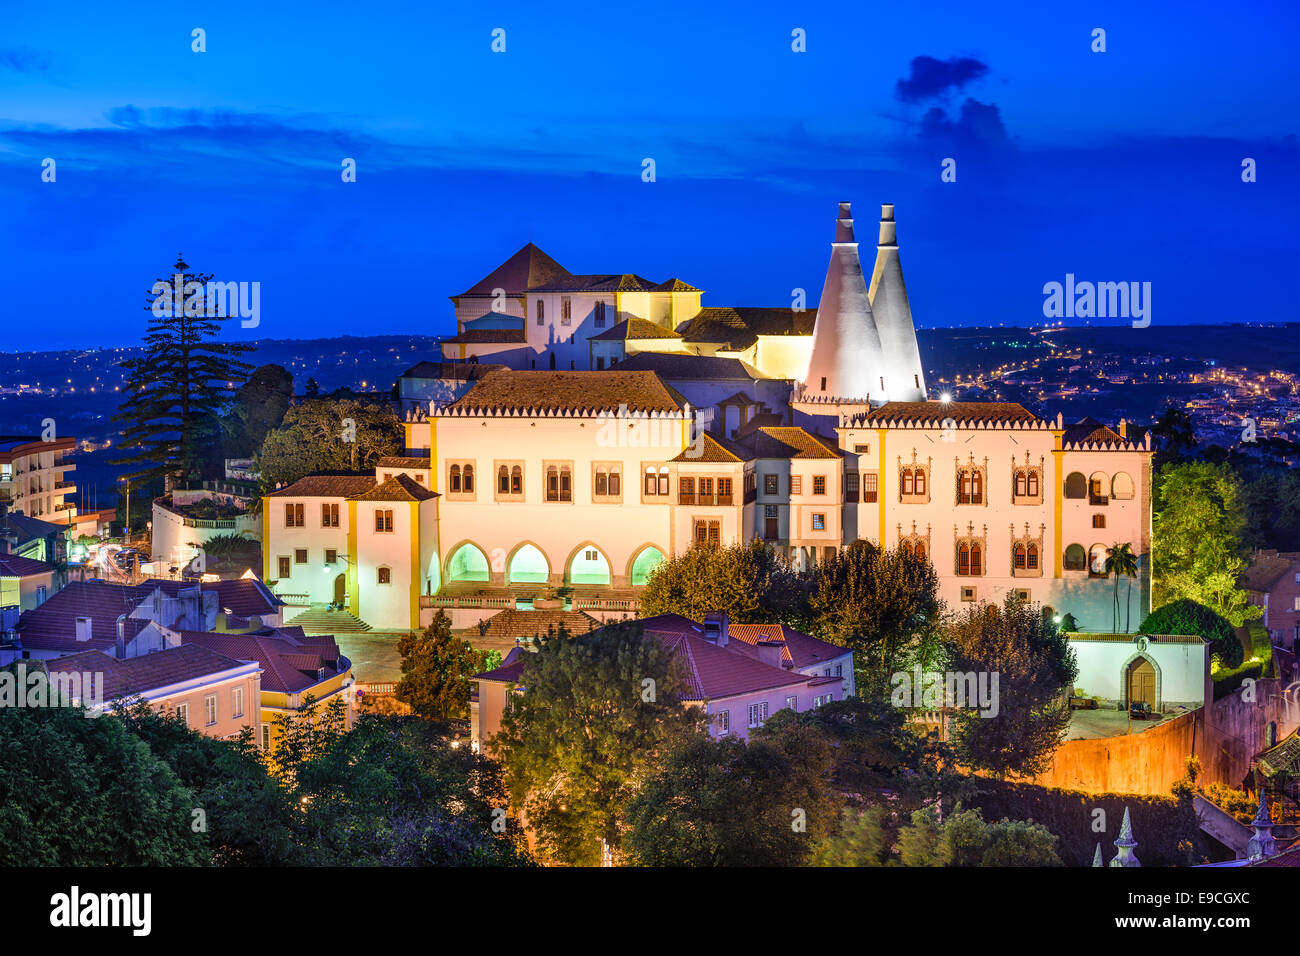 Sintra, Portugal at Sintra National Palace - Stock Image